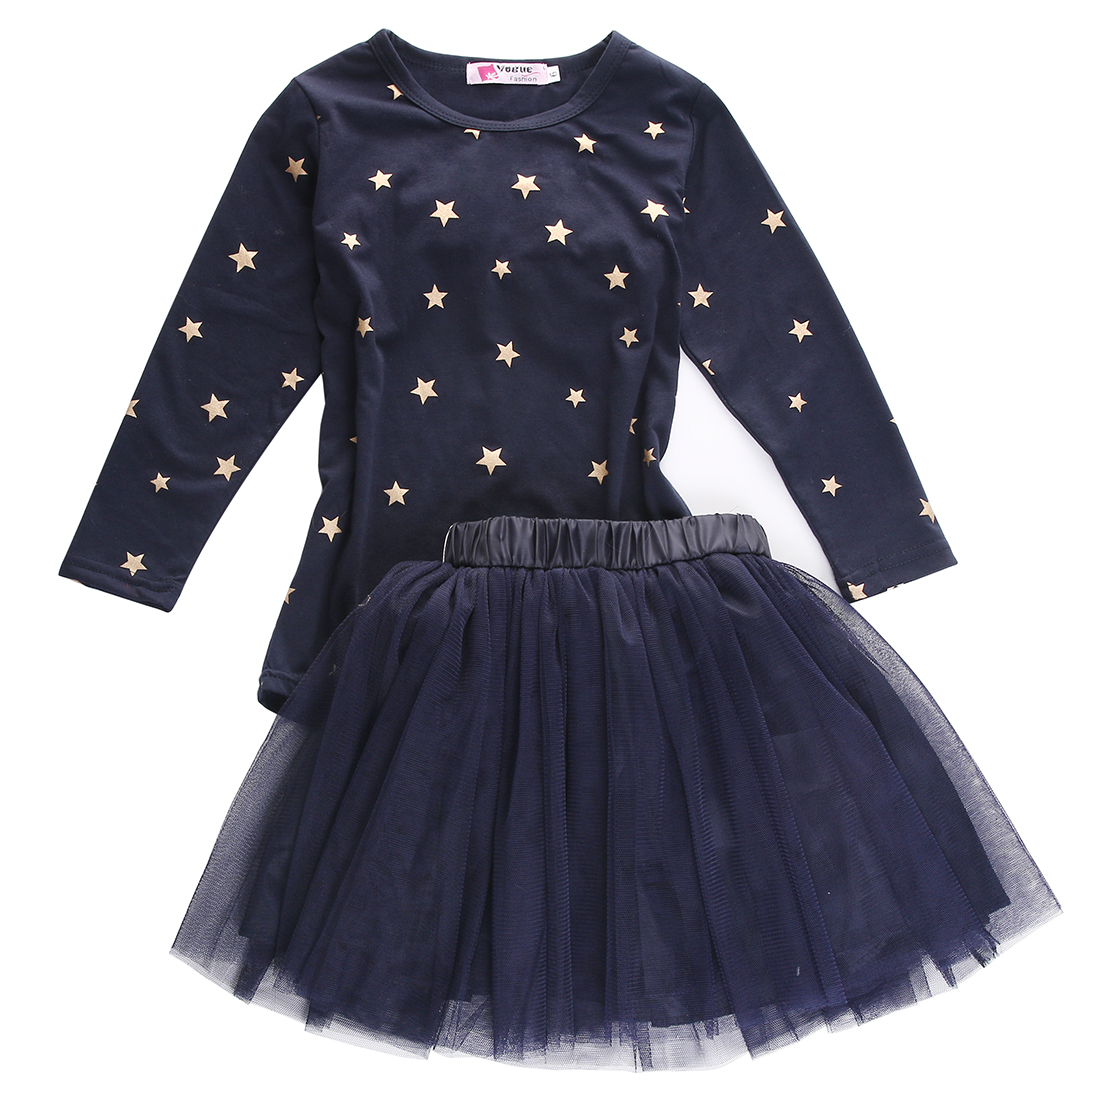 Fashion Pretty Baby Girls Party Star O neck Long Sleeve Tops T-shirt+Tulle Skirts 2pcs Set 2-7Years ободки pretty mania ободок